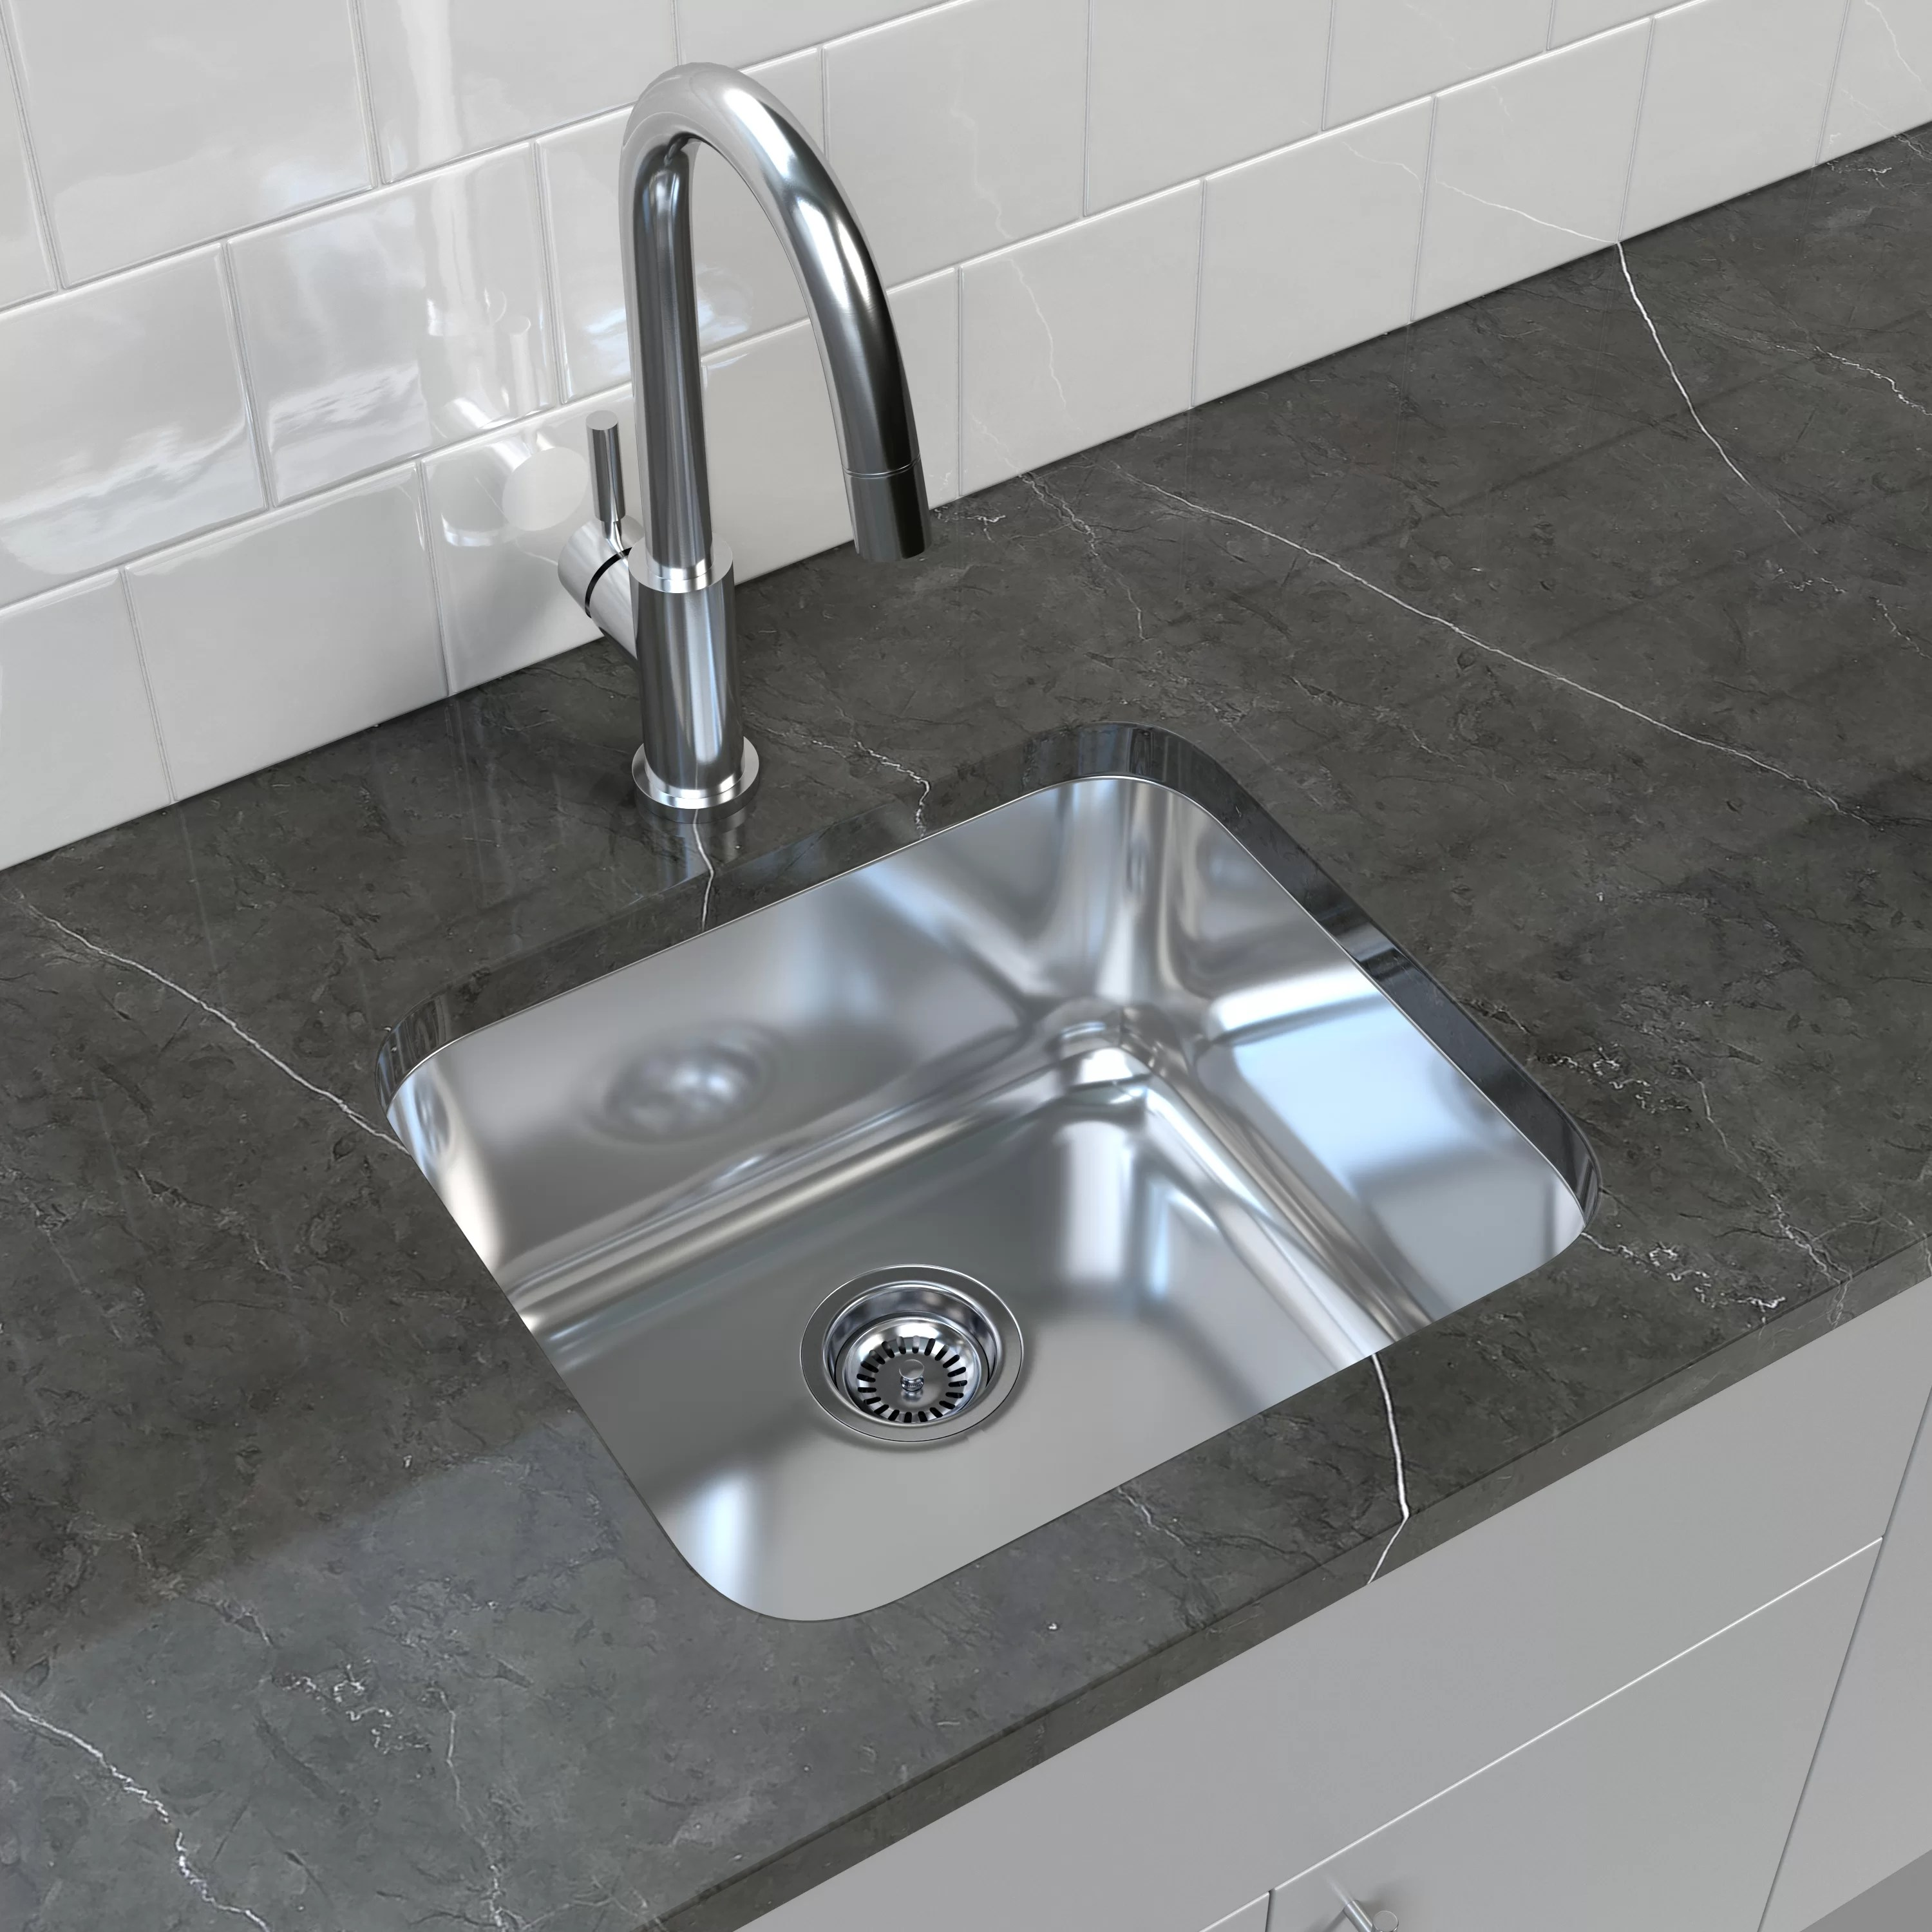 20 l x 18 w bar kitchen sink with sink and drain assembly and stopper